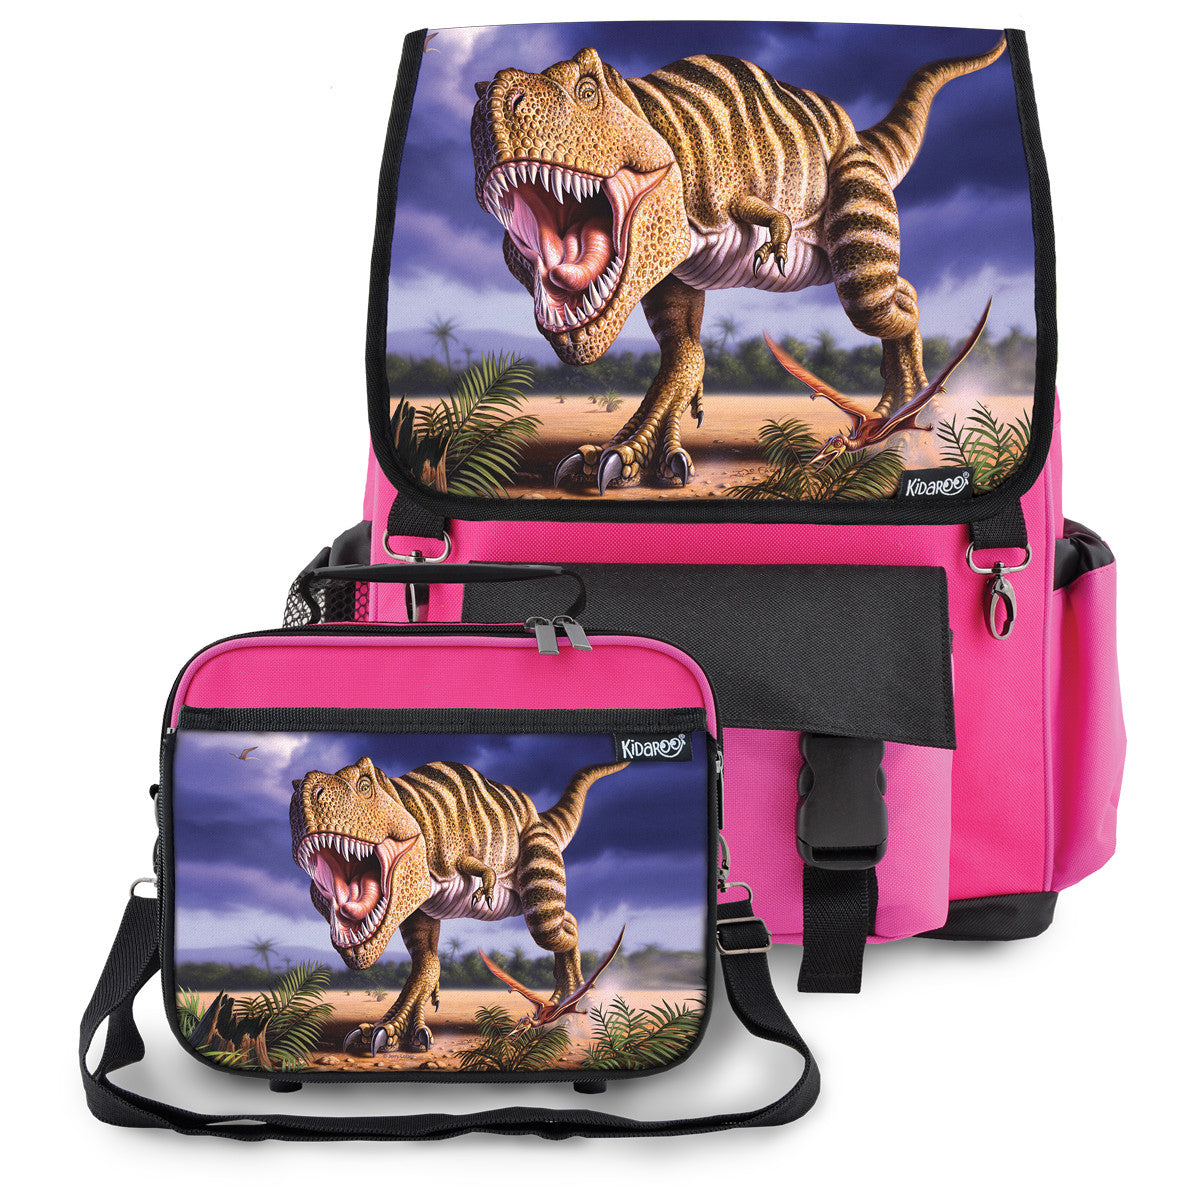 Kidaroo Pink Stripped T-Rex Dinosaur Backpack & Lunchbox for Boys, Girls, Kids